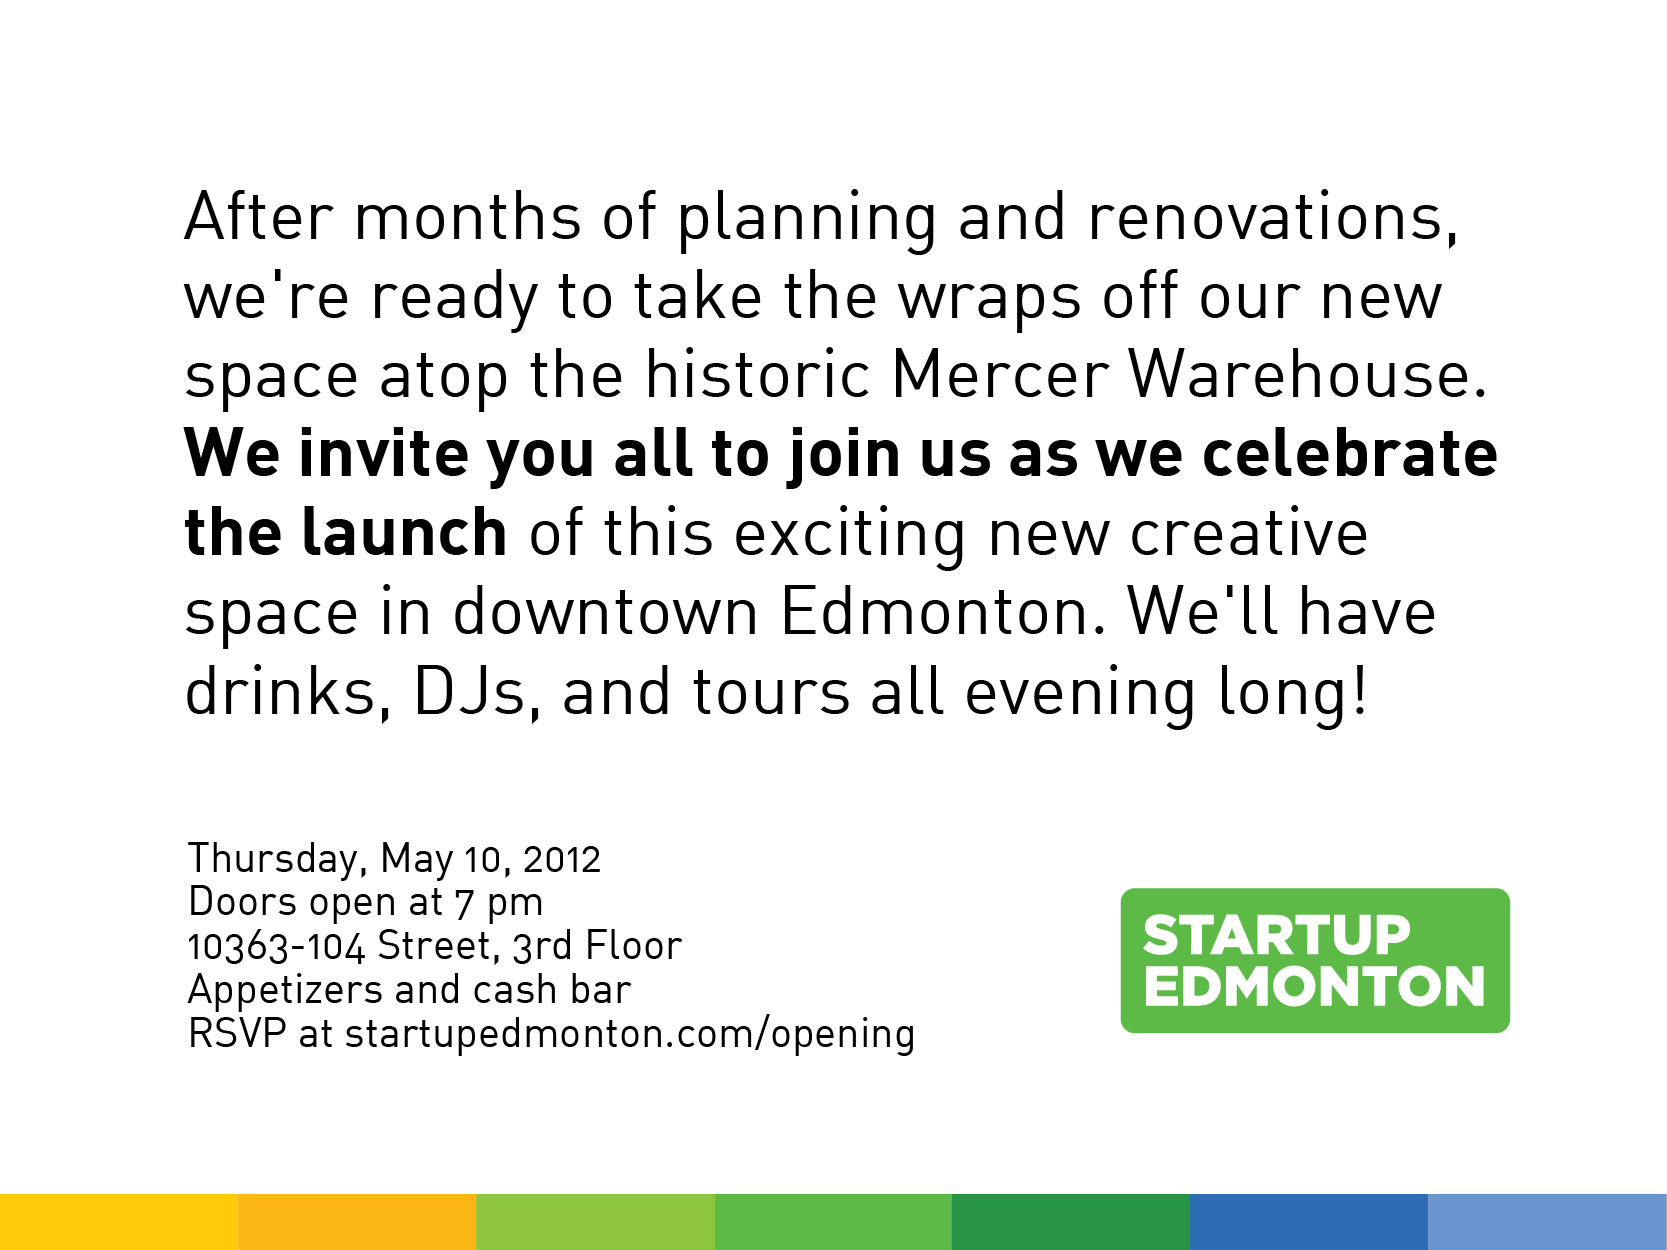 After months of planning and renovations, we're ready to take the wraps off our new space atop the historic Mercer Warehouse. We invite you all to join us as we celebrate the launch of this exciting new creative space in downtown Edmonton. We'll have drinks, DJs, and tours all evening long!